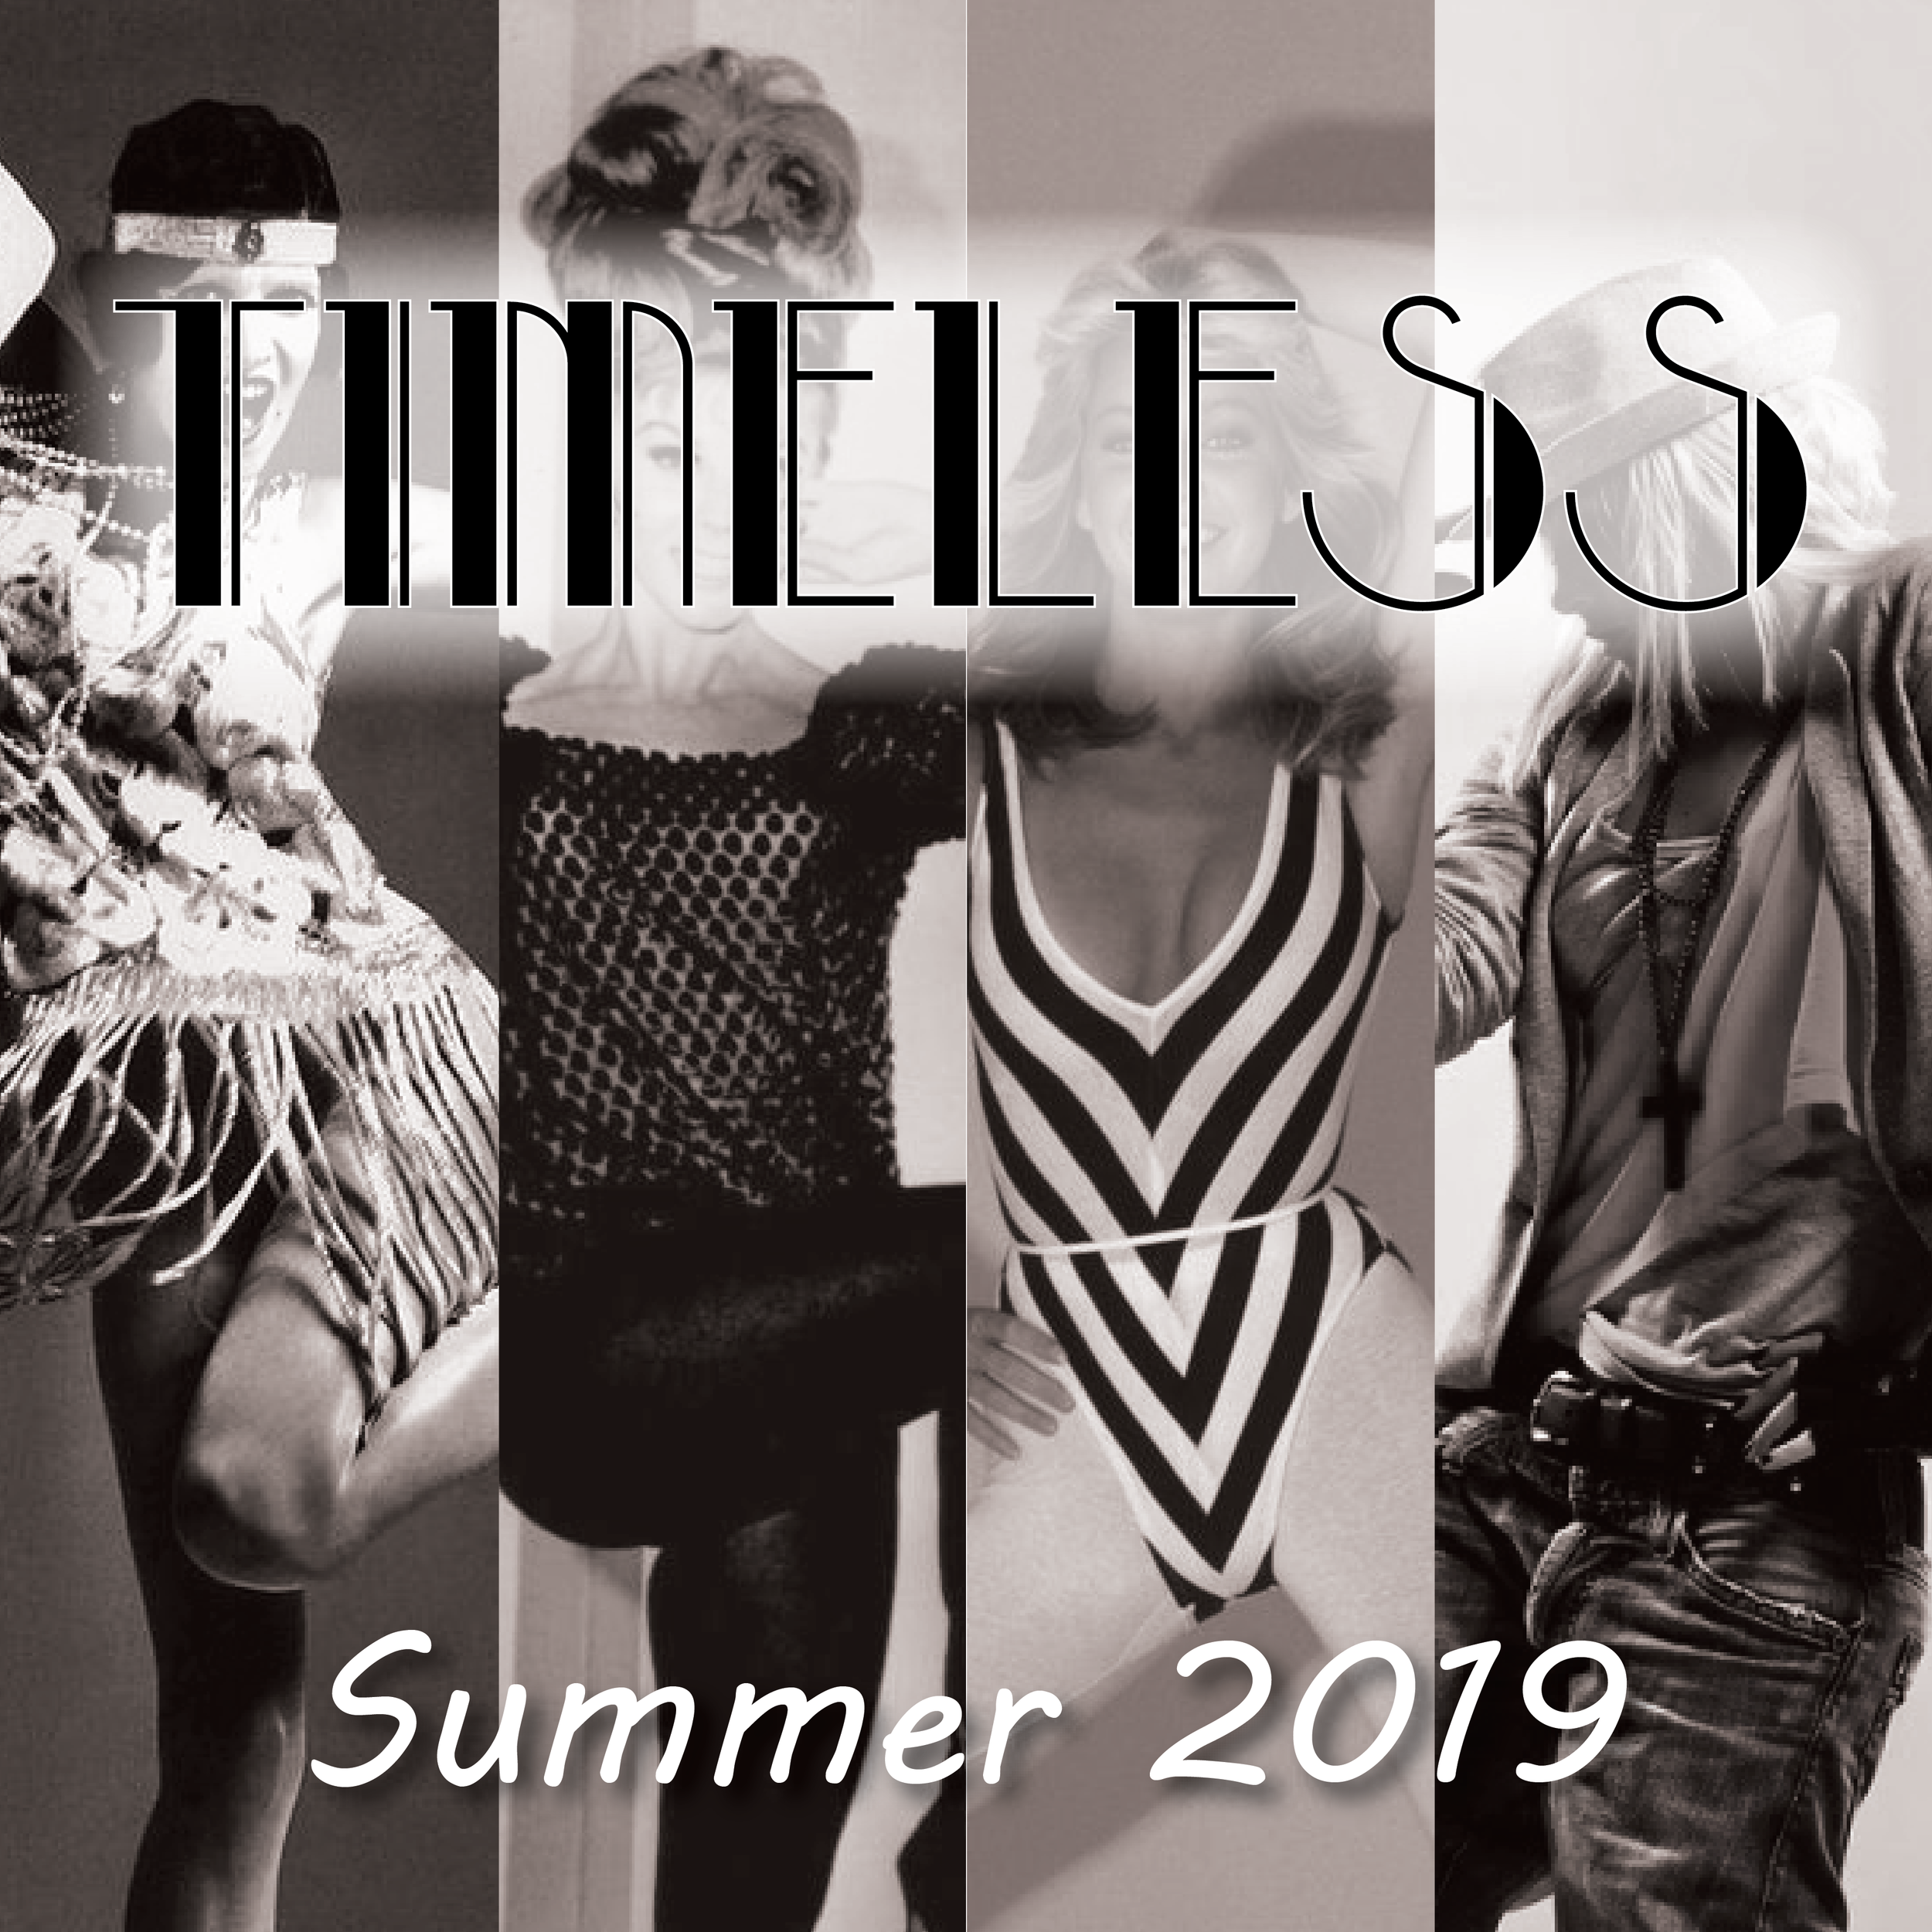 Timeless (2019)  Shenton Performing Arts Centre